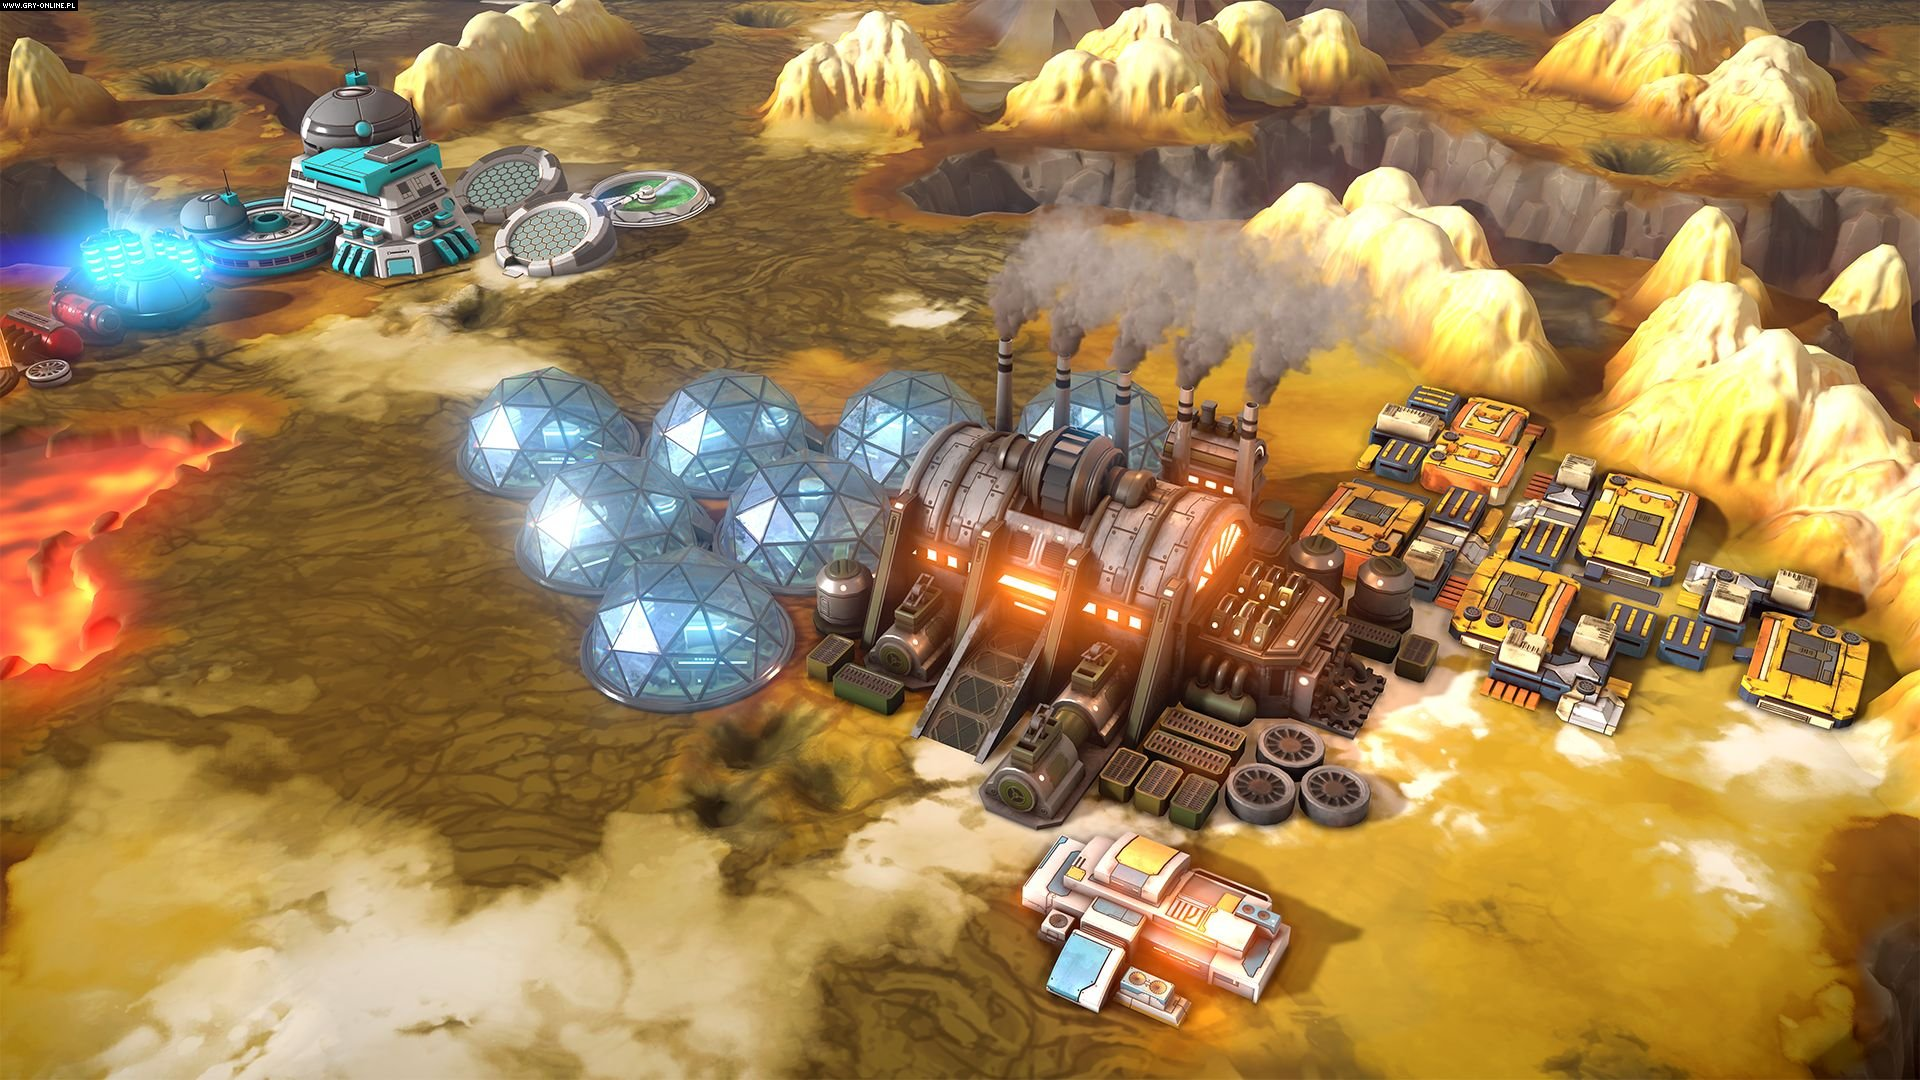 Offworld Trading Company: Jupiter's Forge PC Gry Screen 5/5, Mohawk Games, Stardock Corporation